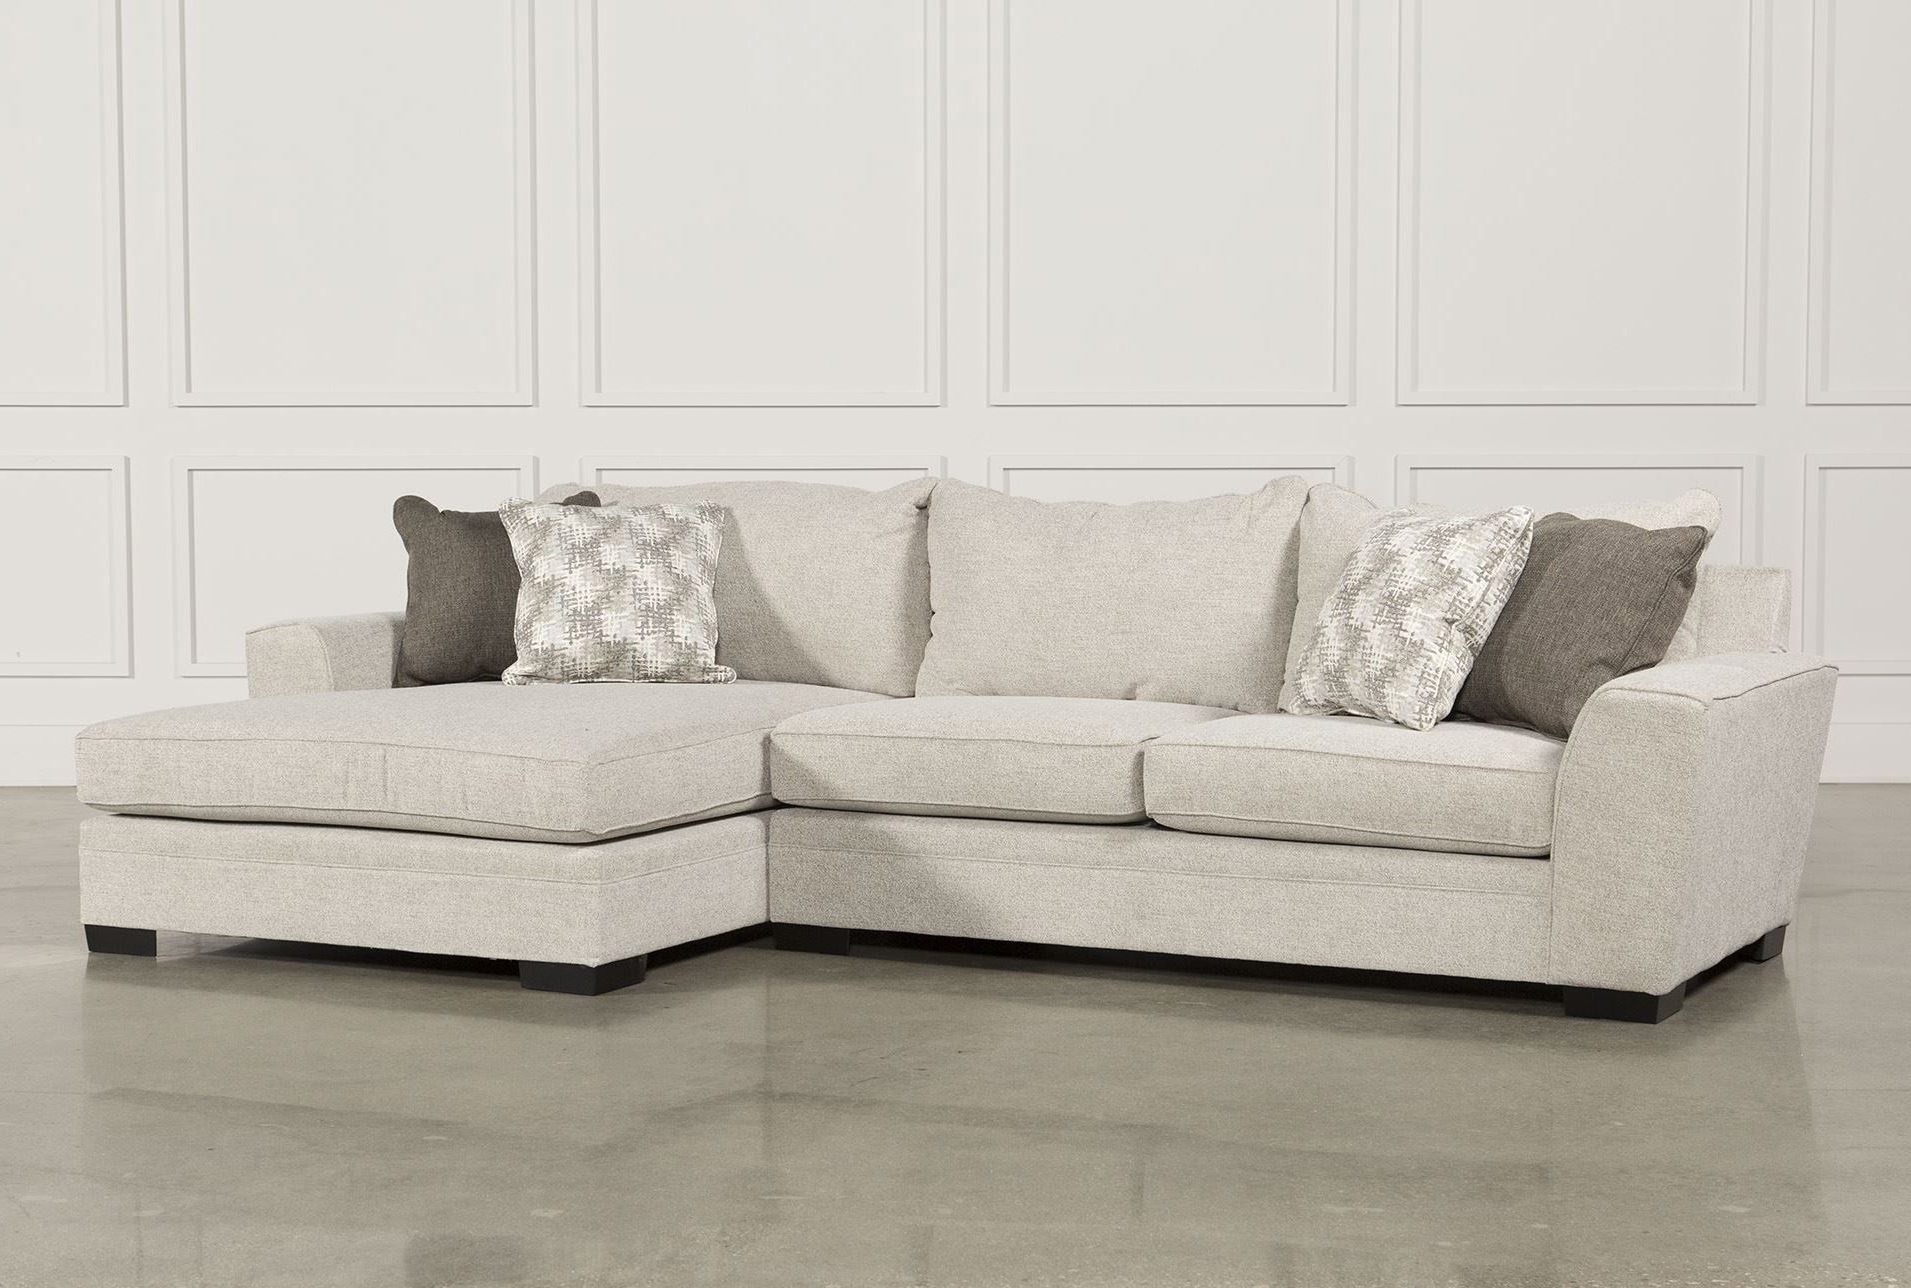 New Home For Latest Delano 2 Piece Sectionals With Laf Oversized Chaise (Gallery 3 of 20)